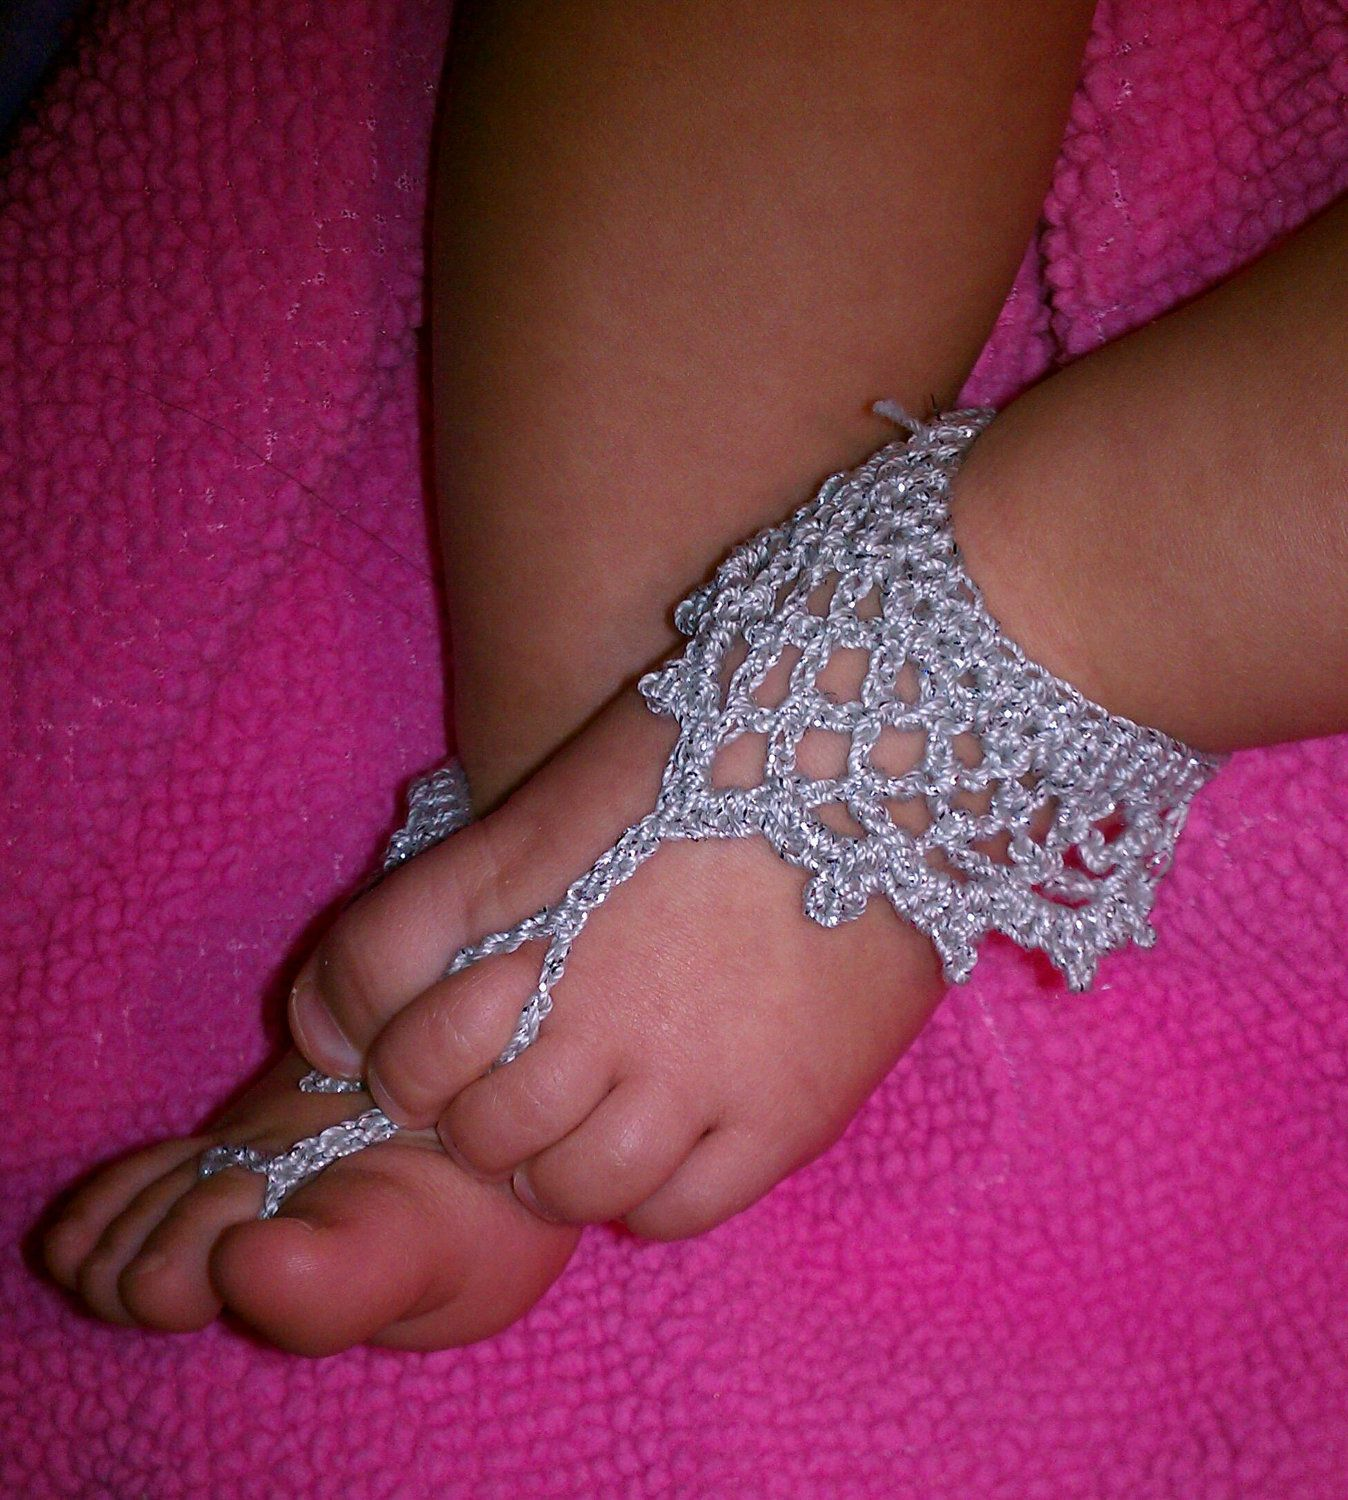 Crochet baby barefoot sandals crochet princess baby barefoot crochet baby barefoot sandals crochet princess baby barefoot sandals photo prop bankloansurffo Image collections